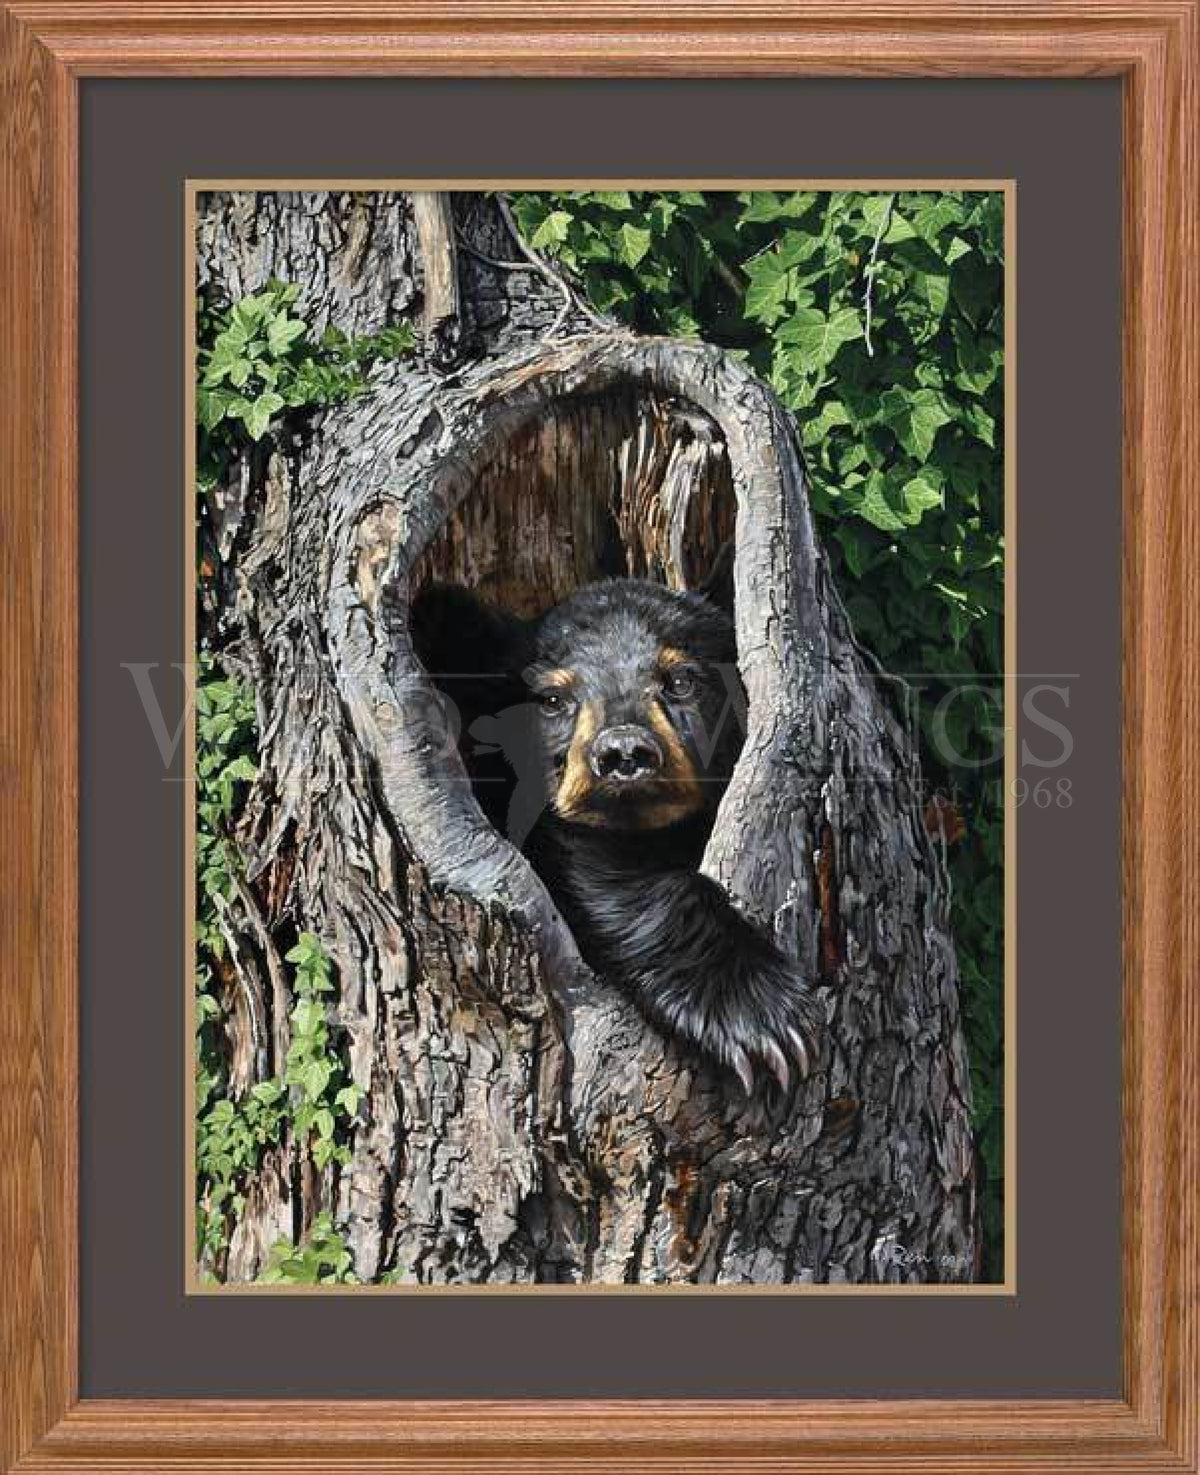 <I>Cubby Hole&mdash;black Bear</i> Gna Premium Framed Print<Br/>31H X 25W Art Collection